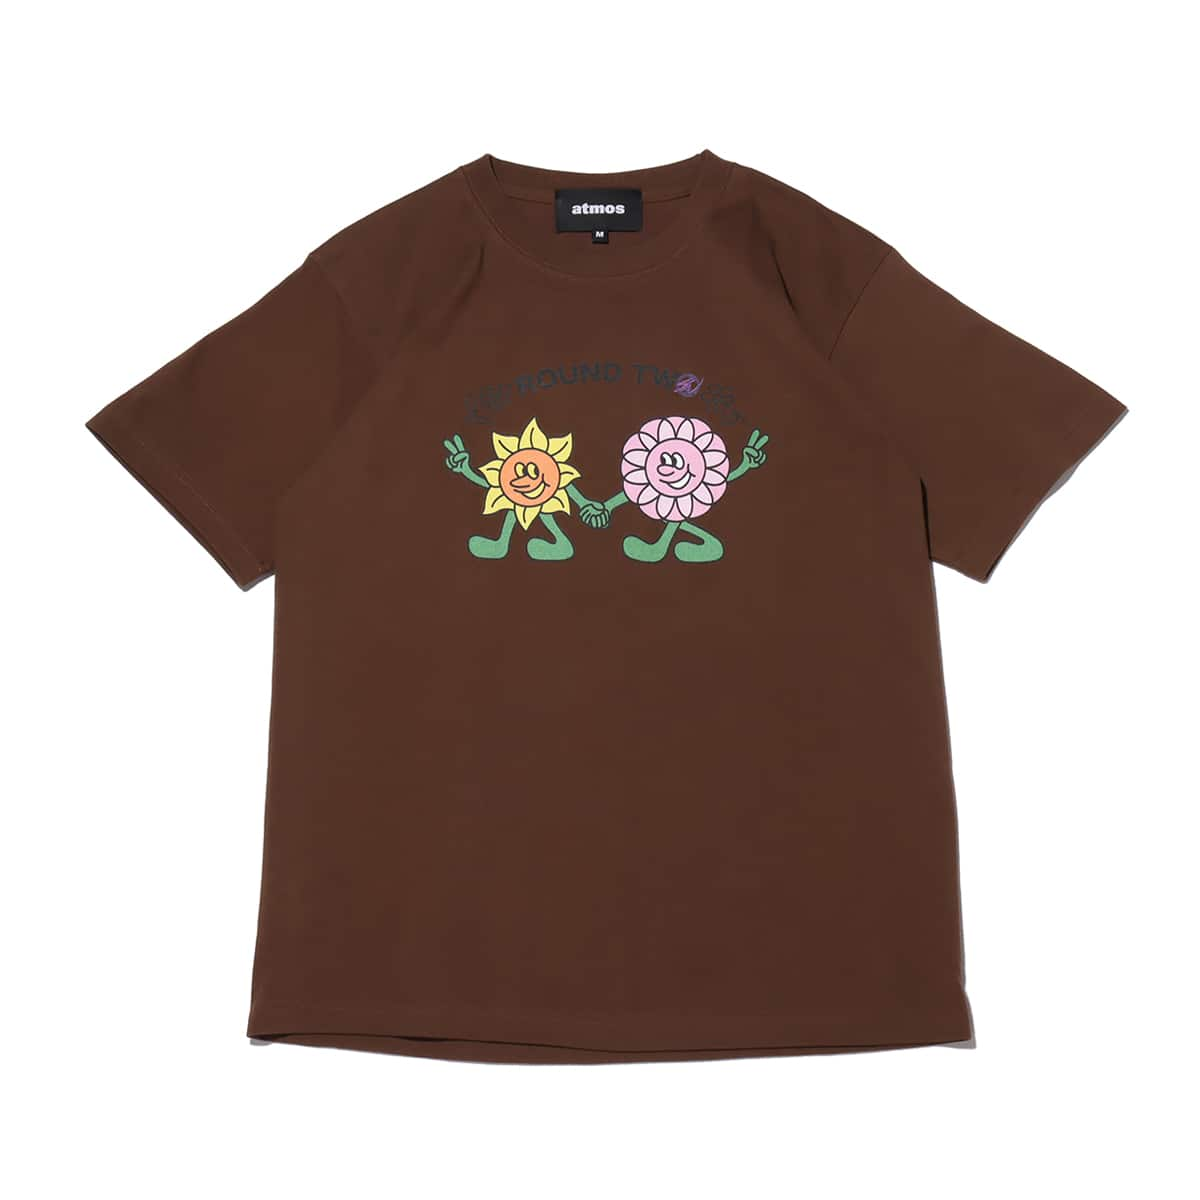 atmos x ROUND TWO WALKING FLOWERS brown 21SP-S_photo_large